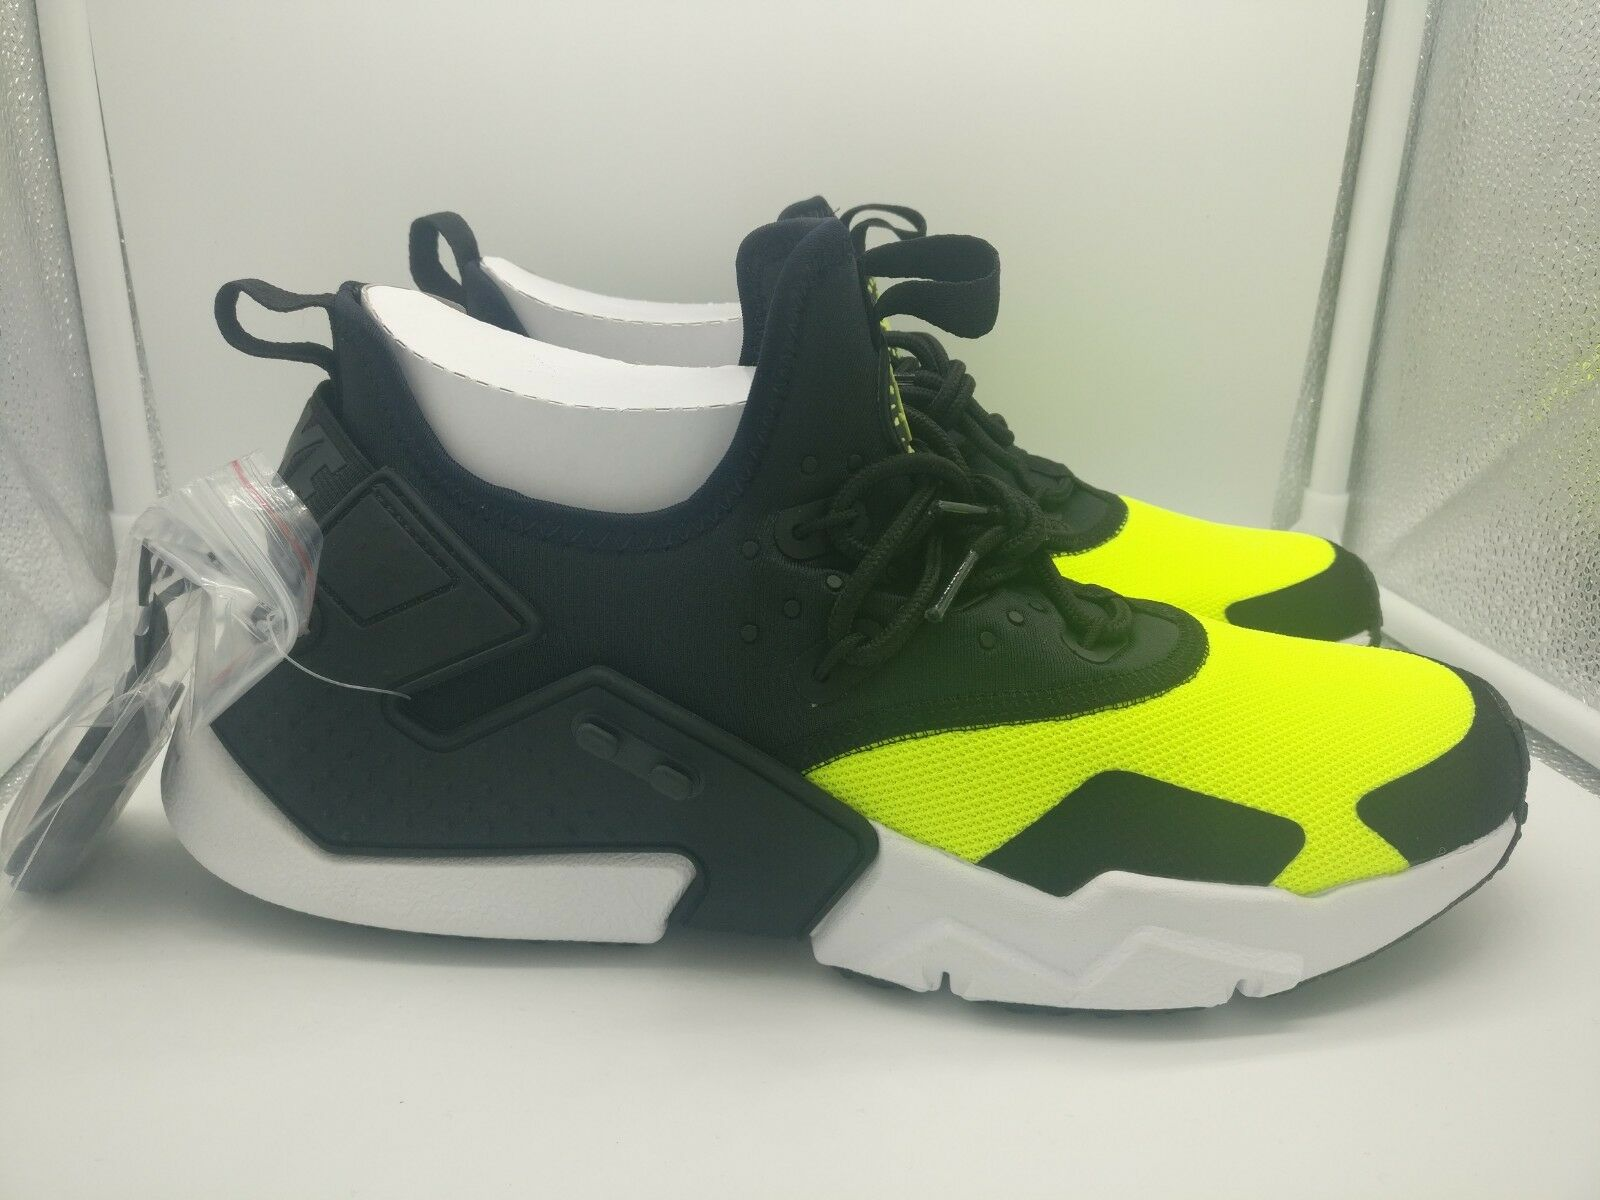 Nike Air Huarache Drift UK 7 V Noir Jaune AH7334-700